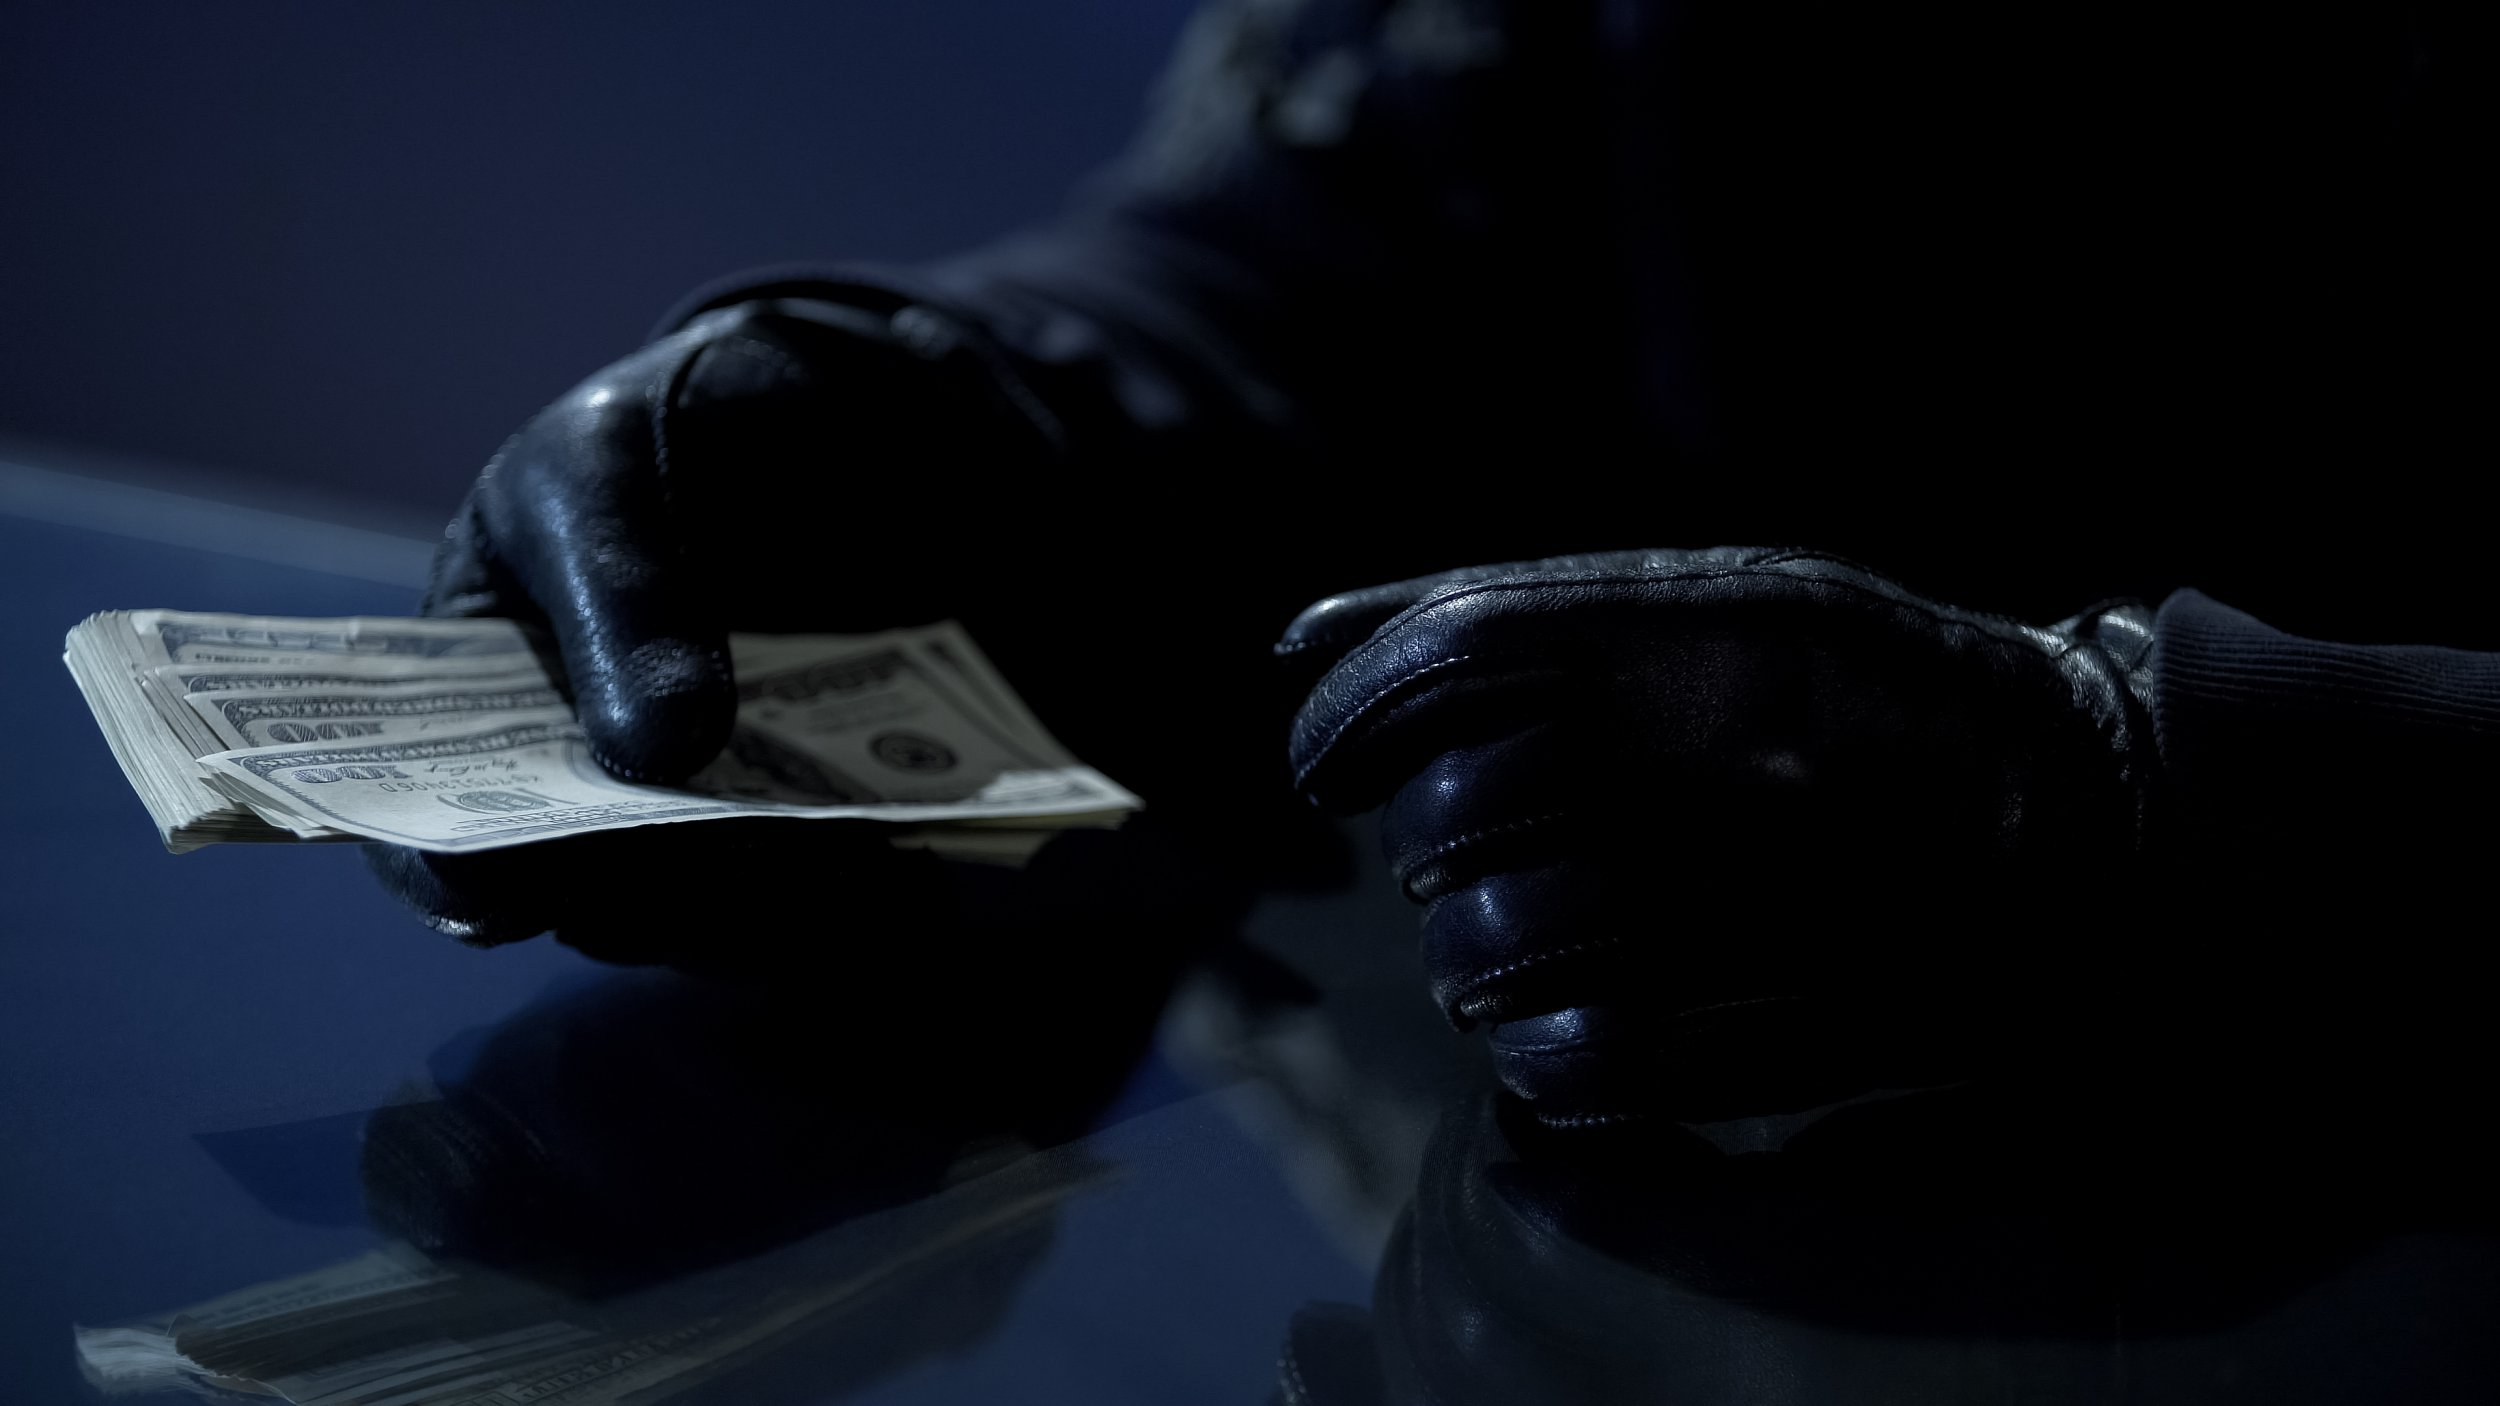 Criminal counting ransom money for kidnapping, blackmail, contract killing; Shutterstock ID 1038183205; Purchase Order: -